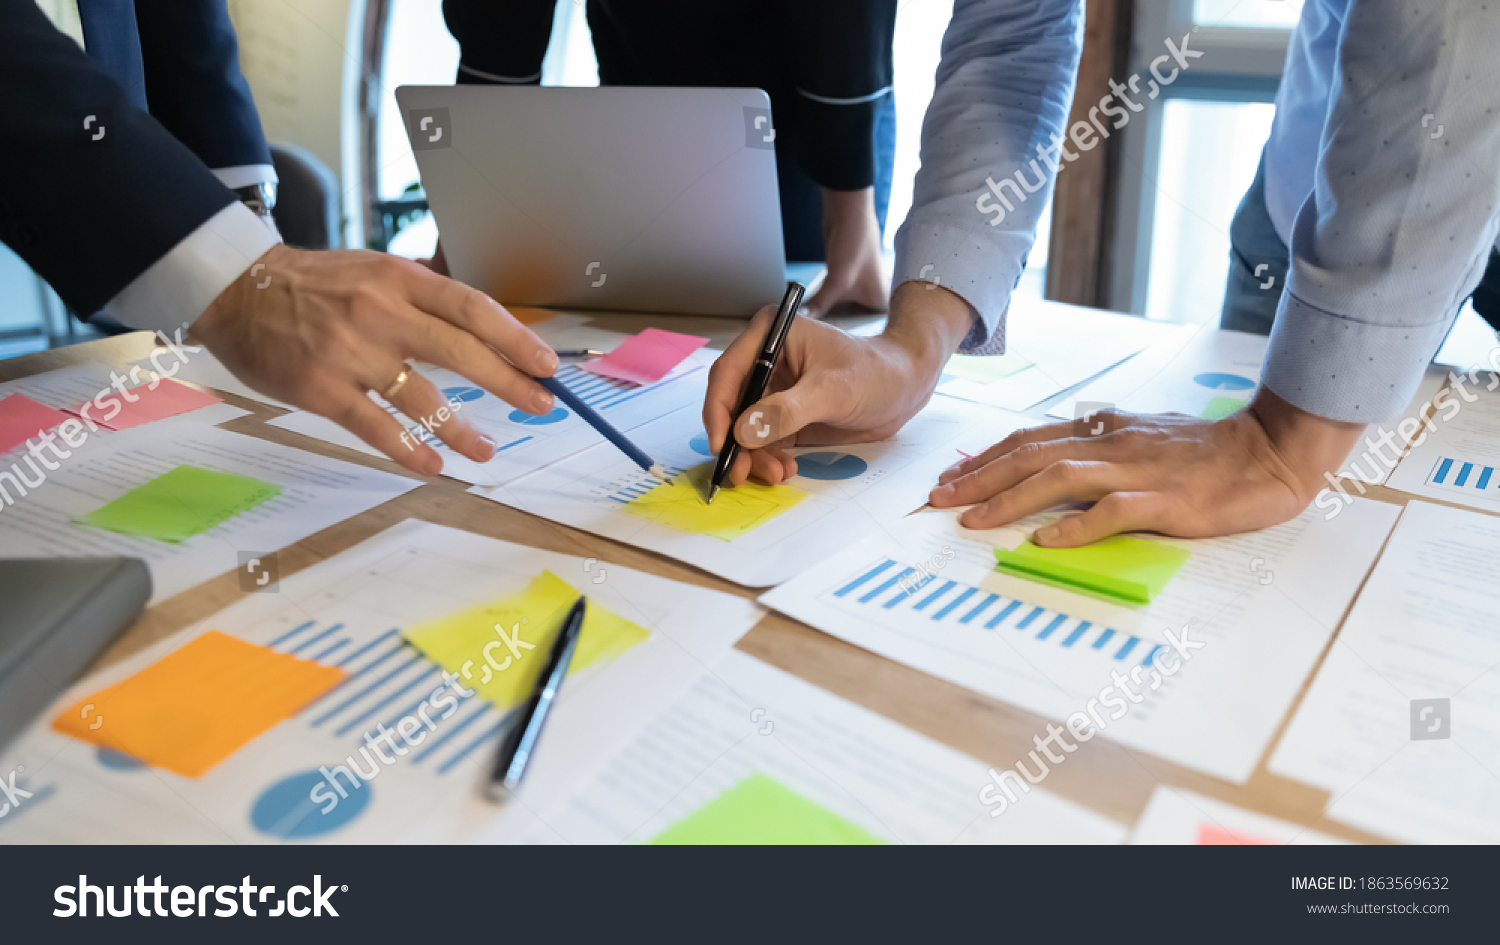 Close up of diverse businesspeople working on project startup presentation in team, comparing statistic data, studying values on graph diagrams, analyzing trends patterns, making notes on paper sheets #1863569632